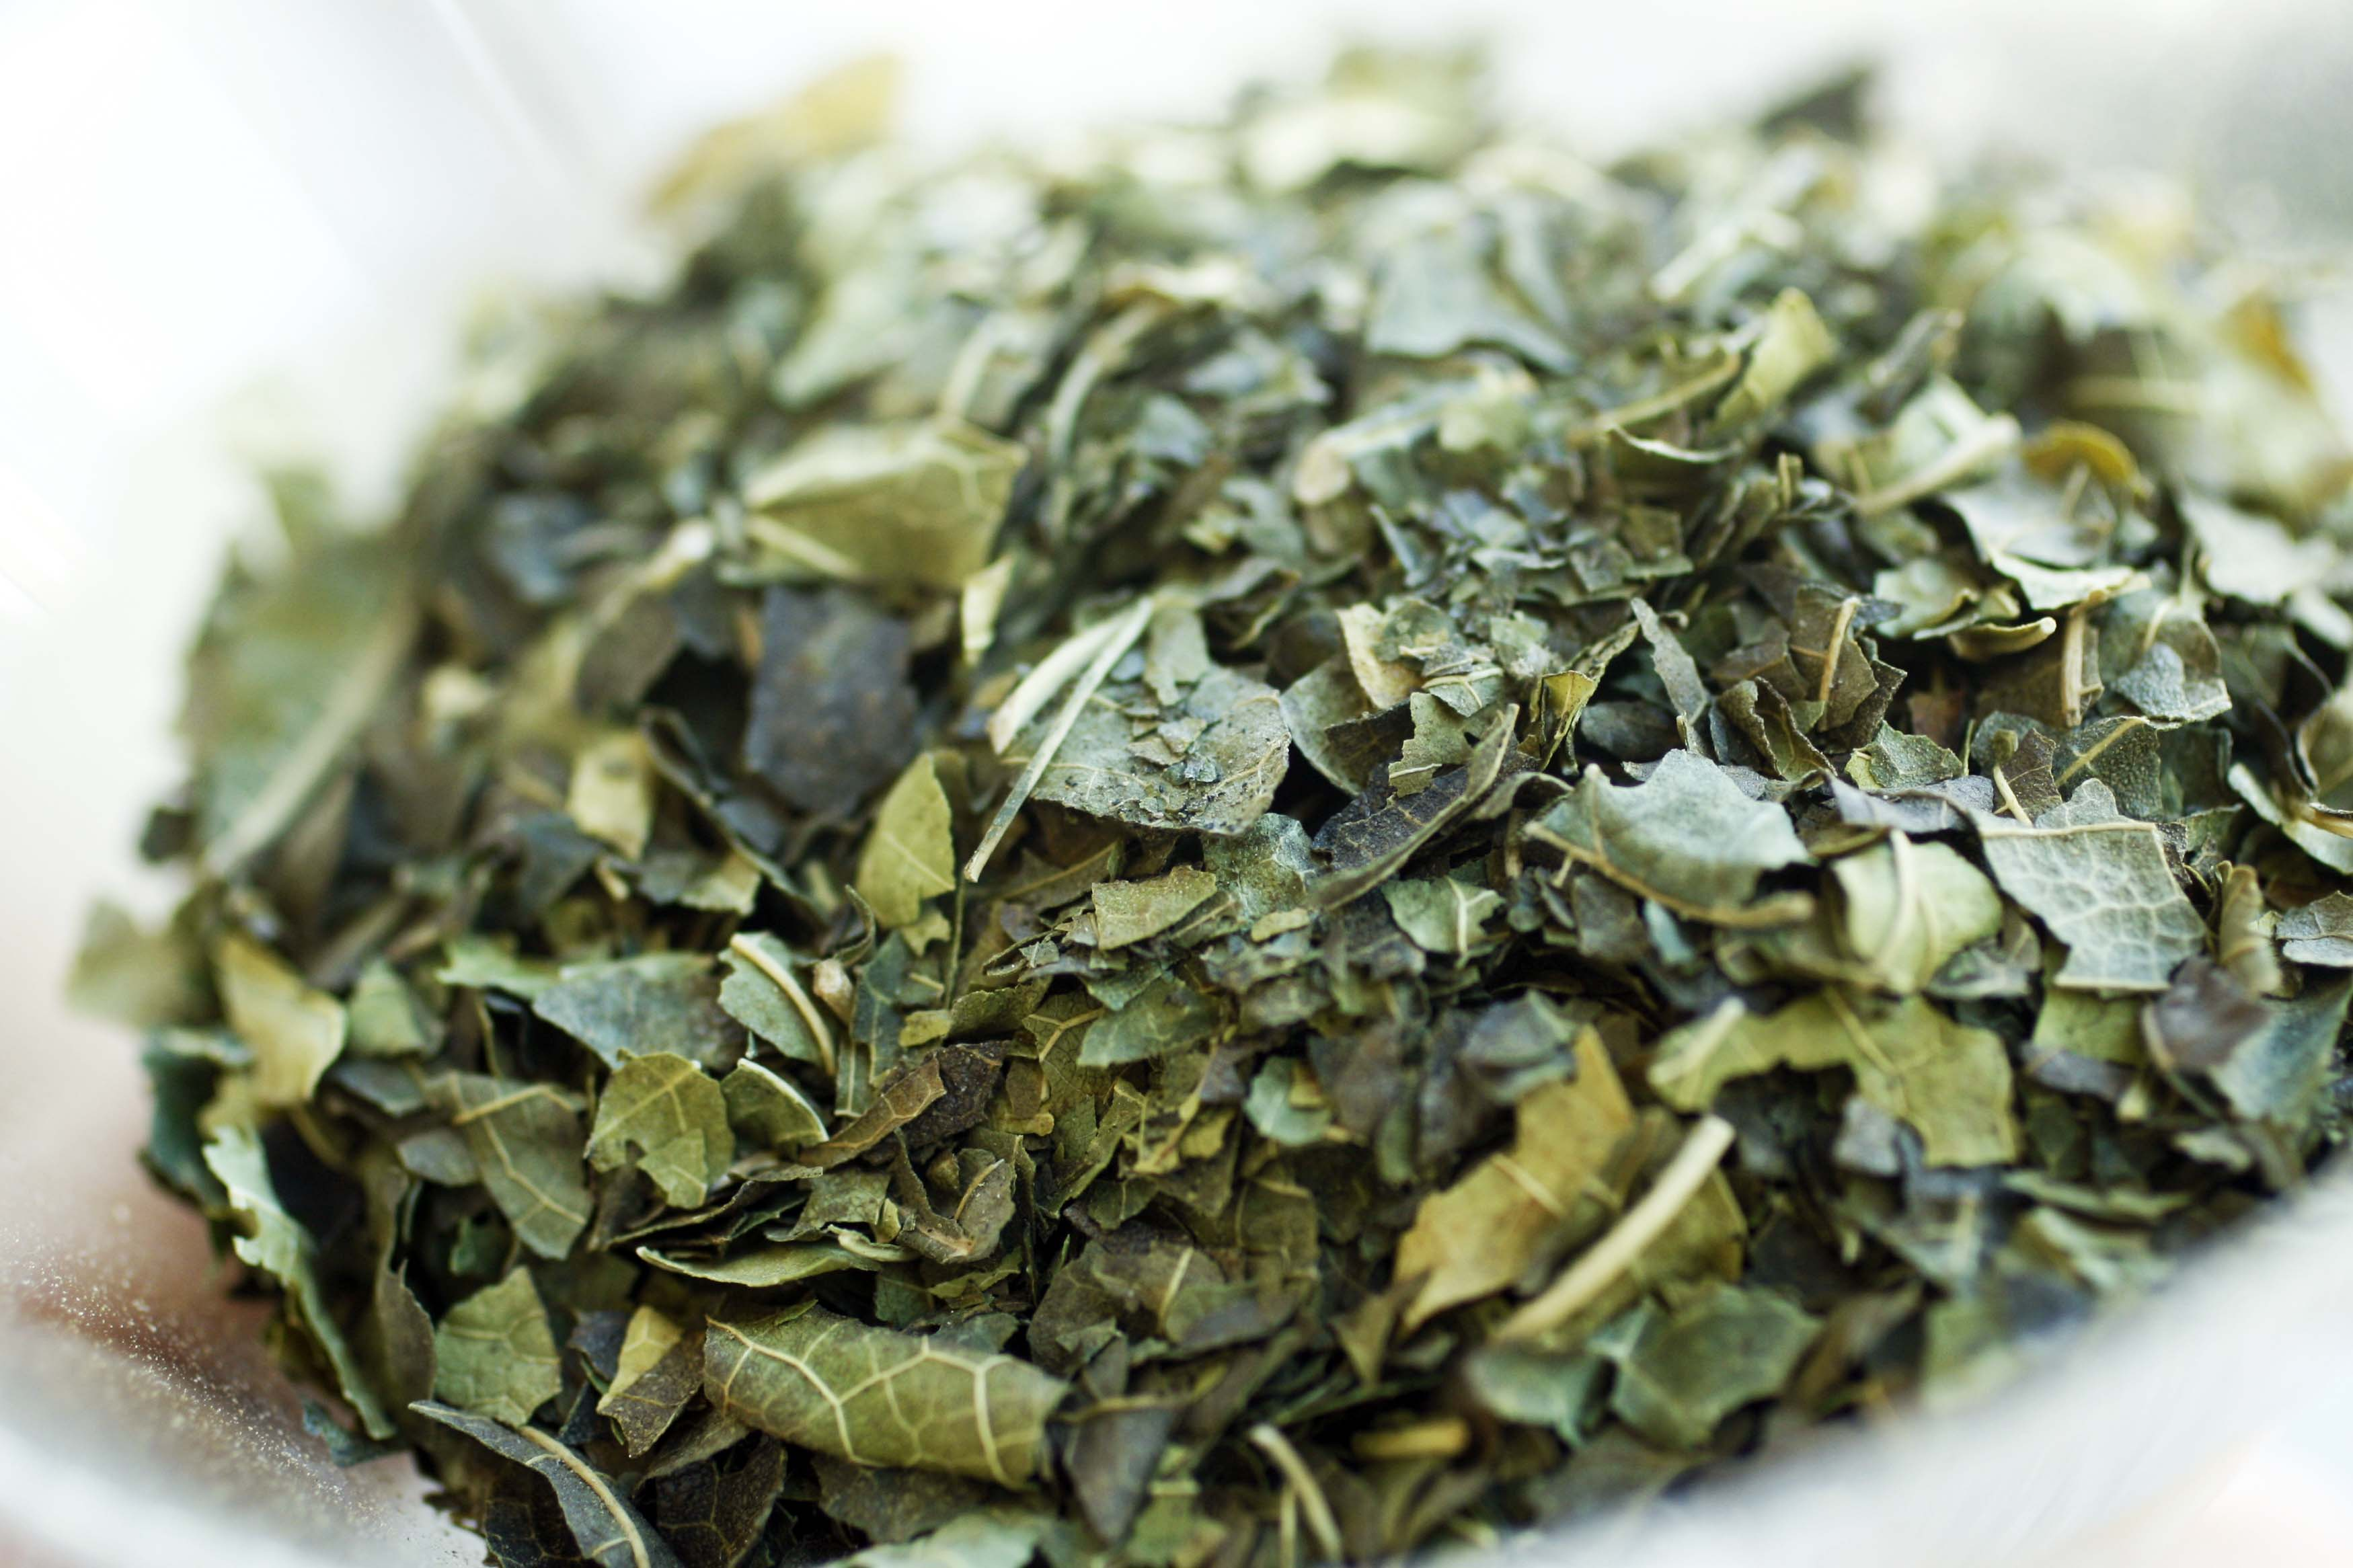 Buy Mulberry Leaf Tea: Benefits, How to Make, Side Effects ...